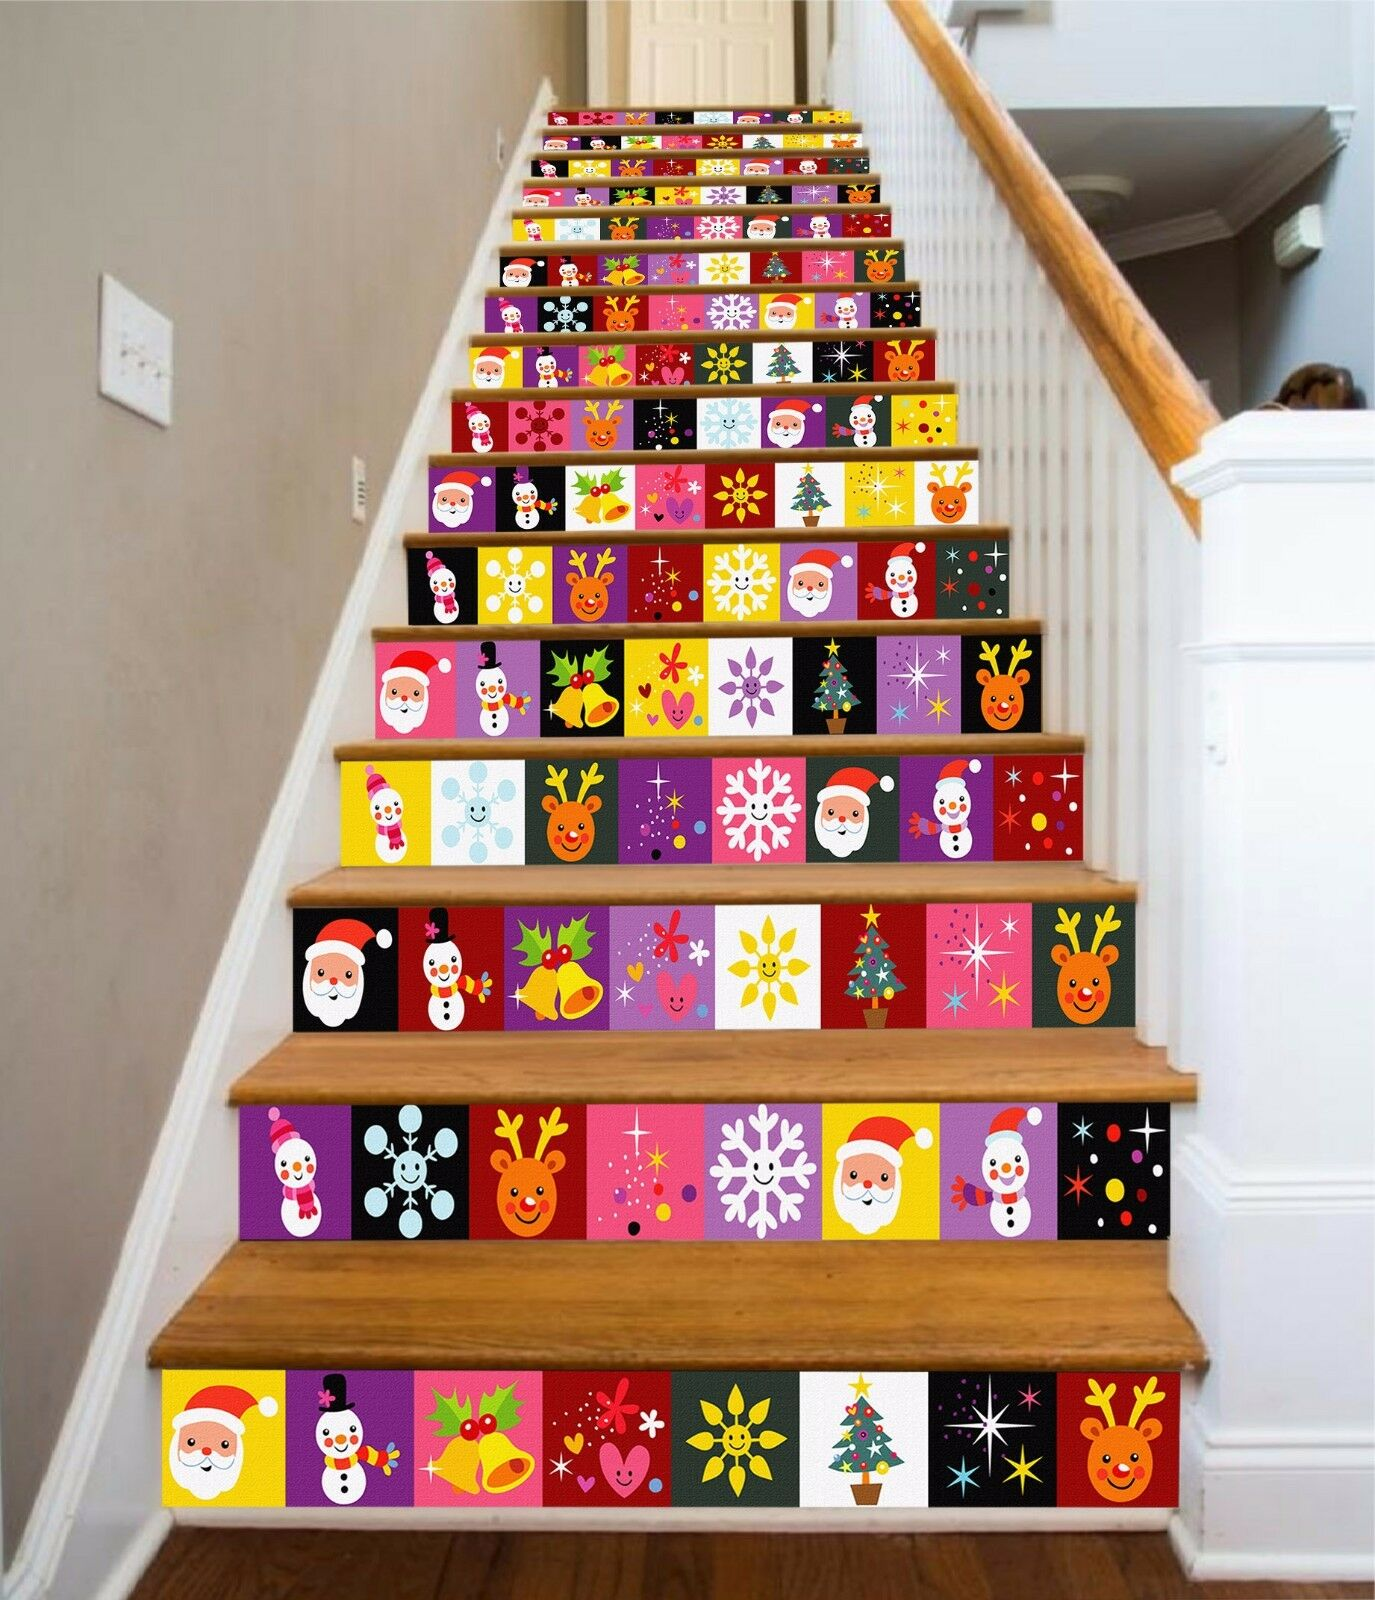 3D Cartoon 637 Stair Riser Decoration Photo Mural Vinyl Decal Wallpaper UK Lemon